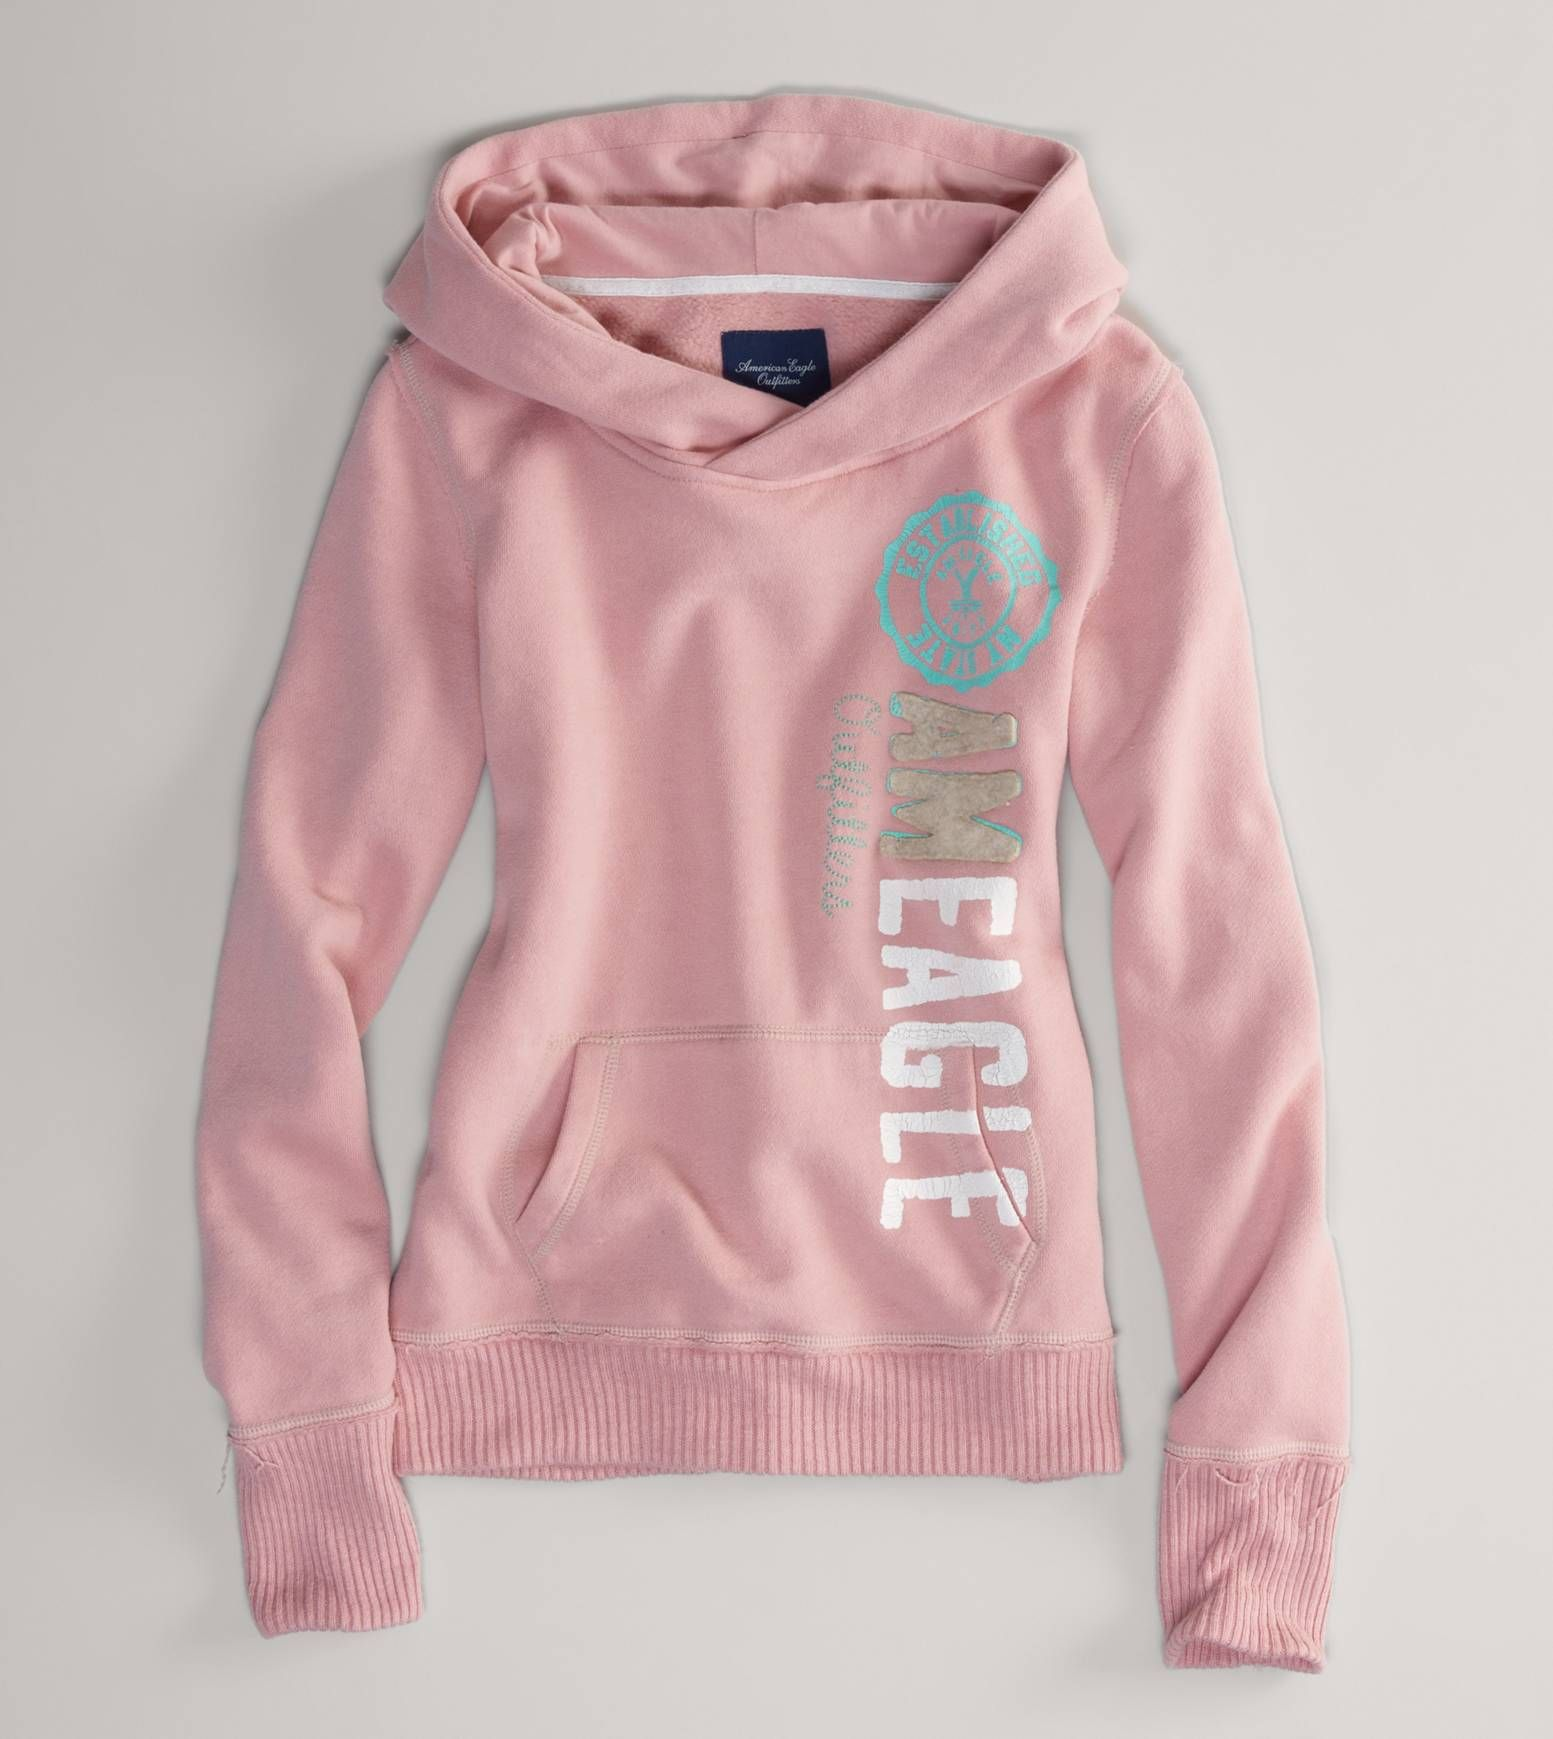 American Eagle Hoodie | STYLE & FASHION | Pinterest